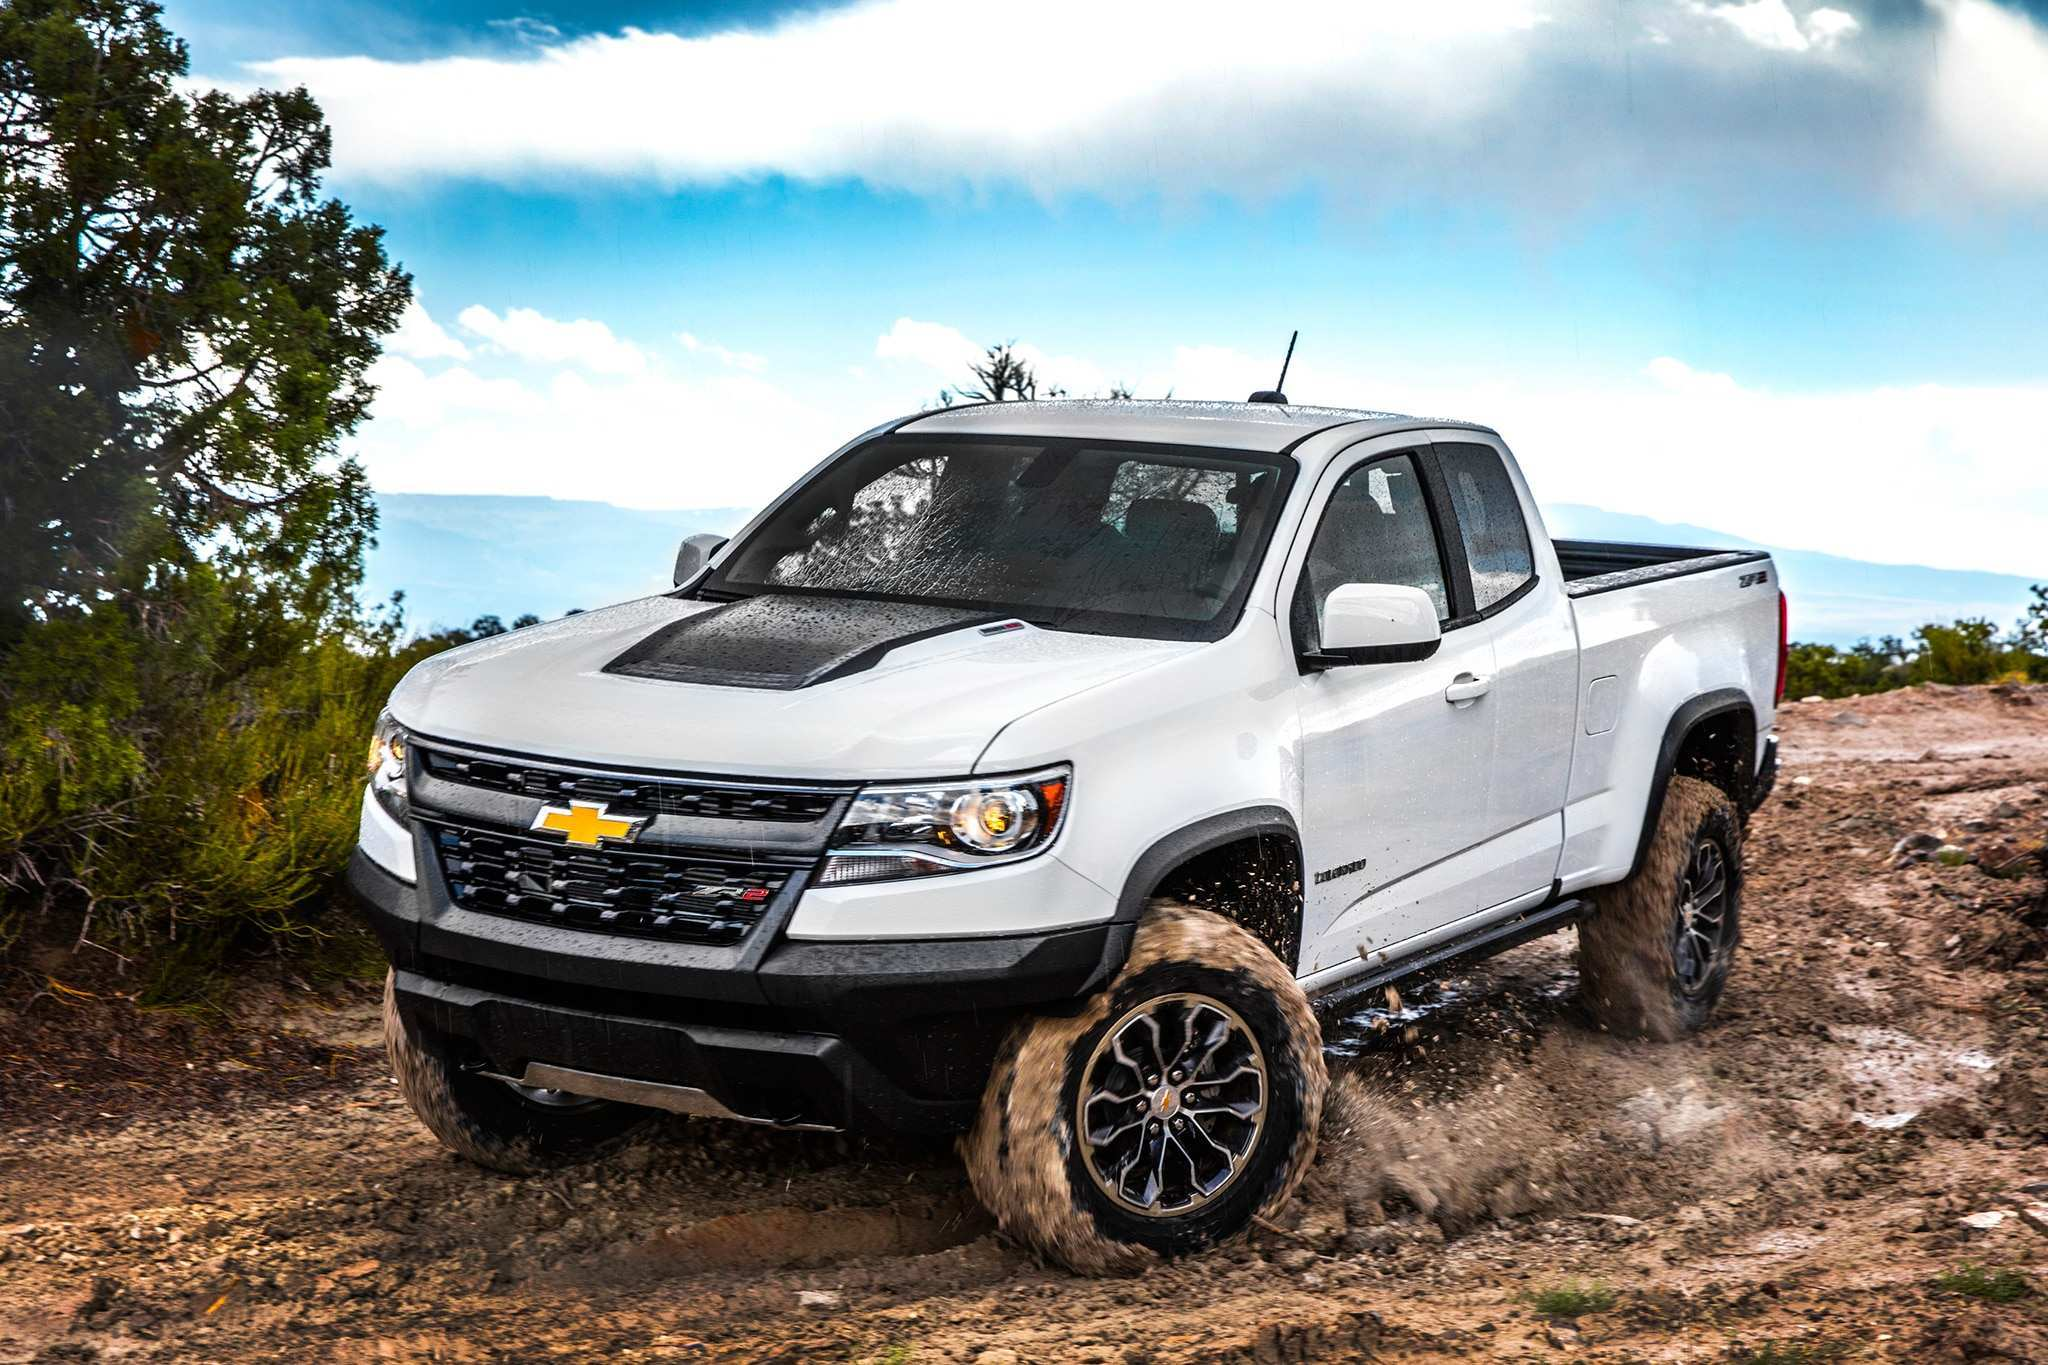 51 The 2019 Chevy Colorado Going Launched Soon First Drive